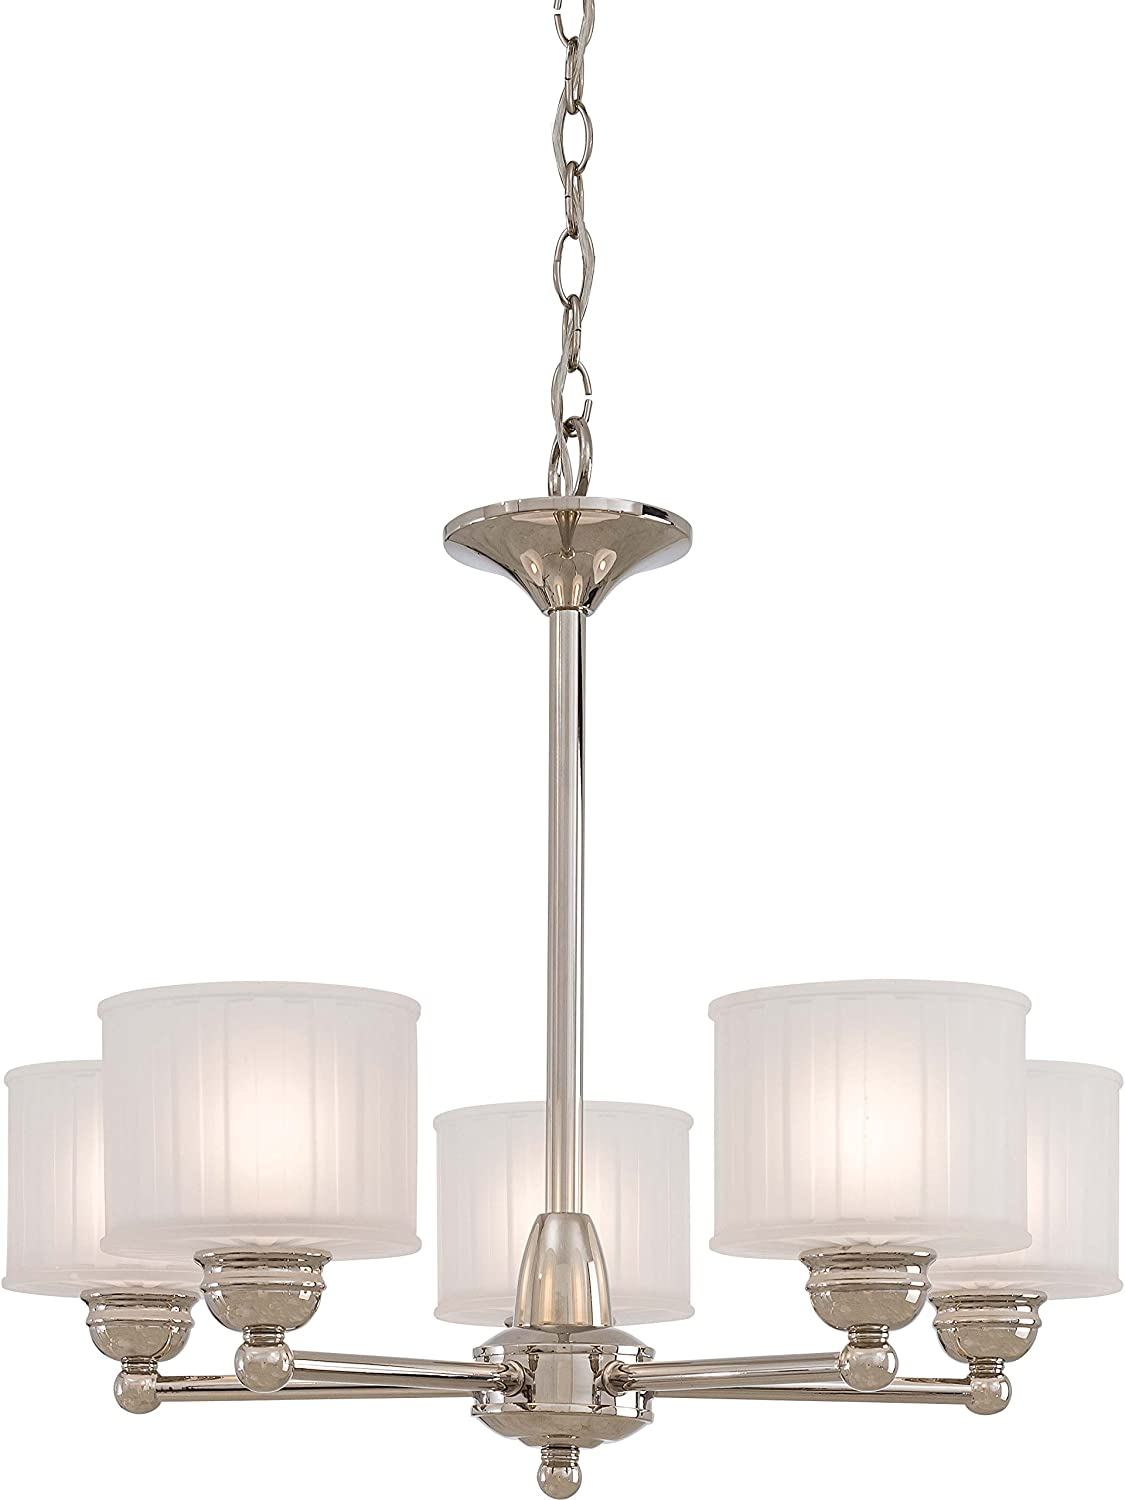 Minka Lavery Chandelier Pendant Lighting 1735-613, 1730 Series Glass Dining Room, 5 Light, 500 Watts, Polished Nickel